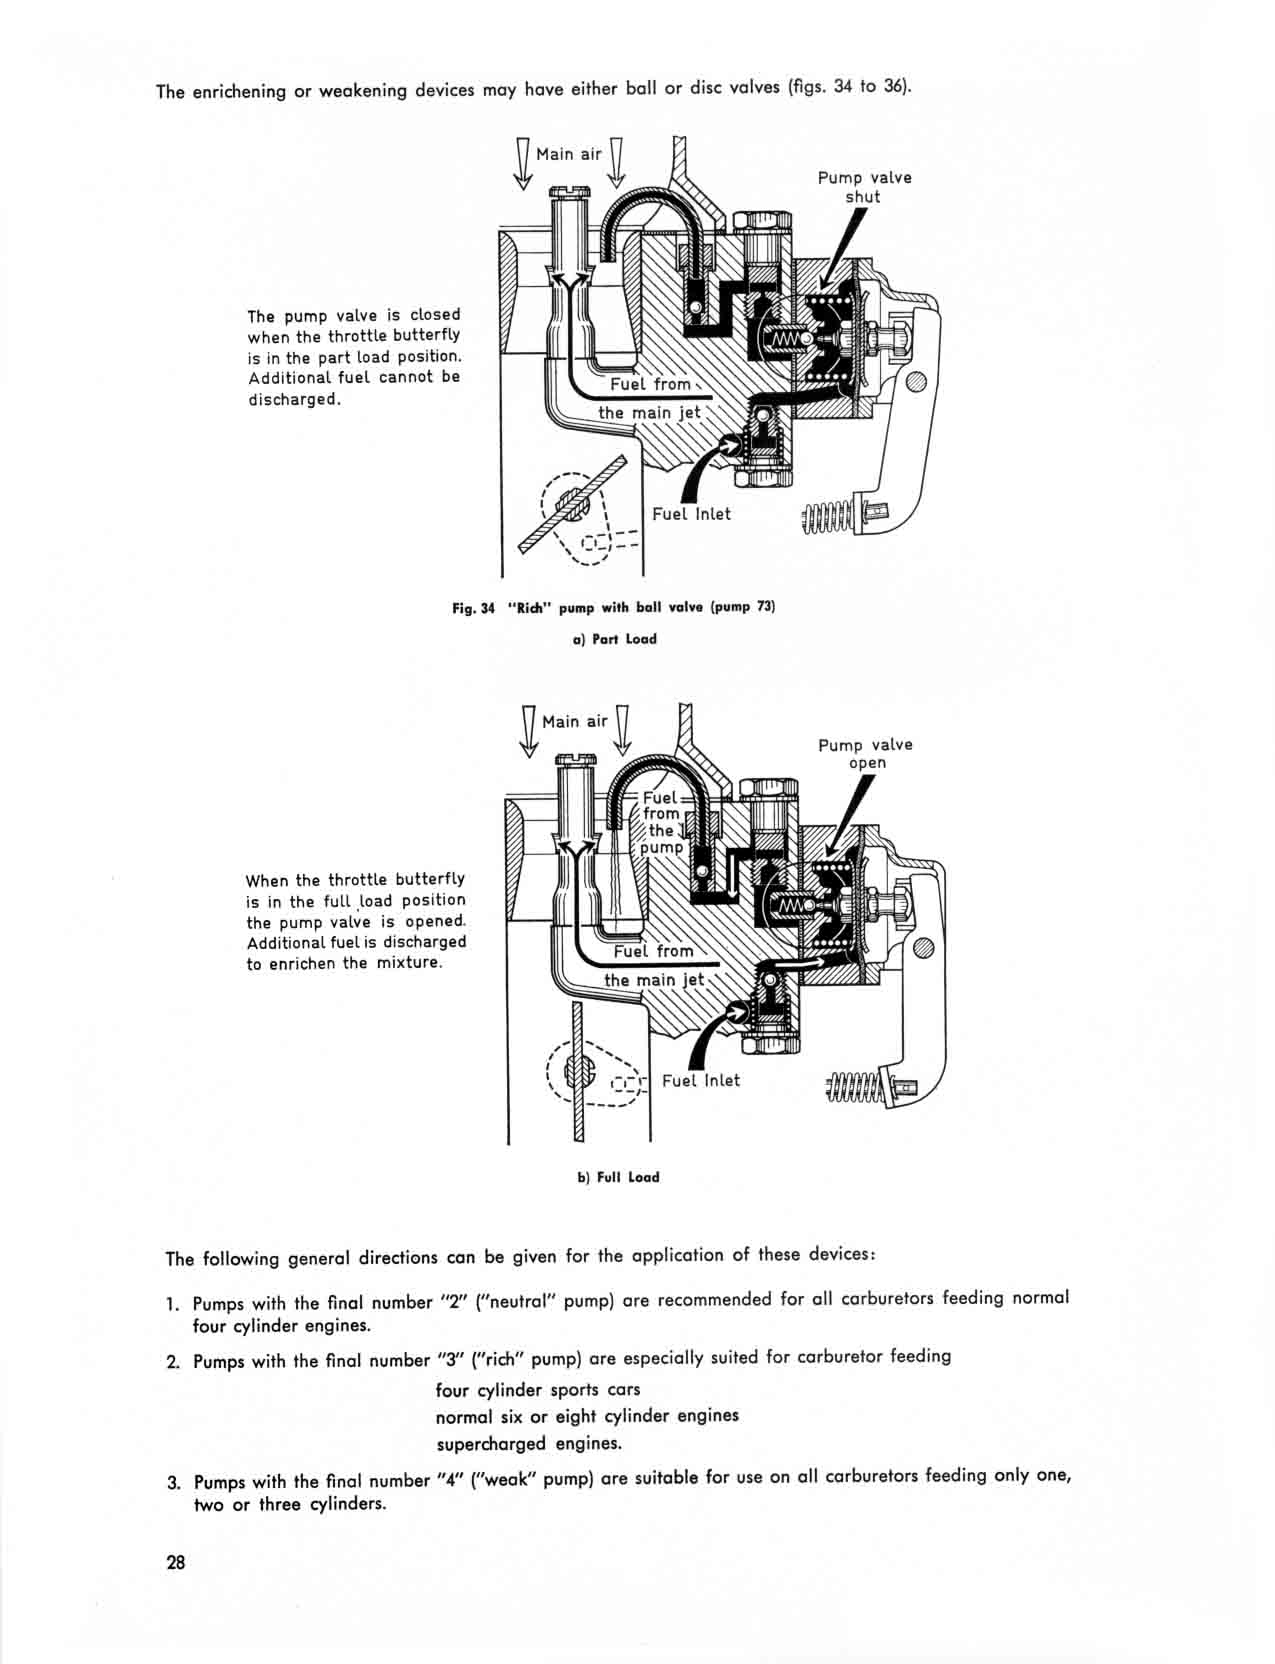 Obsolete Air Cooled Documentation Project Solex Selection And Tuning Of The Carburetor